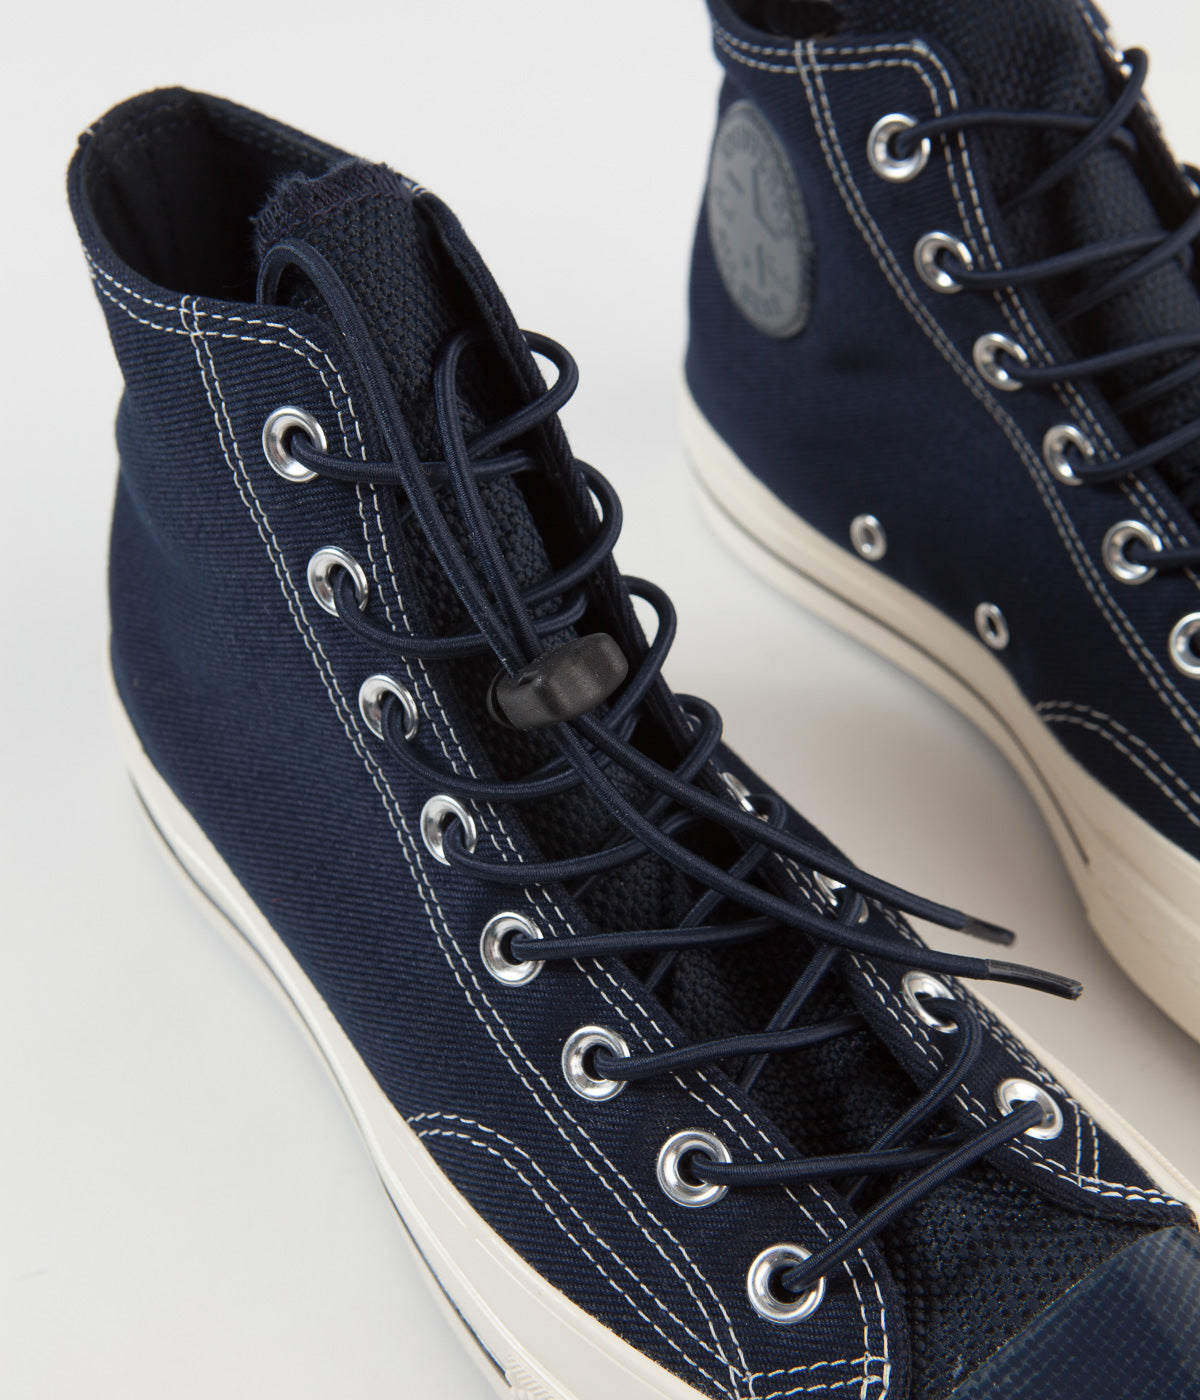 Converse CTAS 70's Hi Shoes - Dark Obsidian / Black / Egret